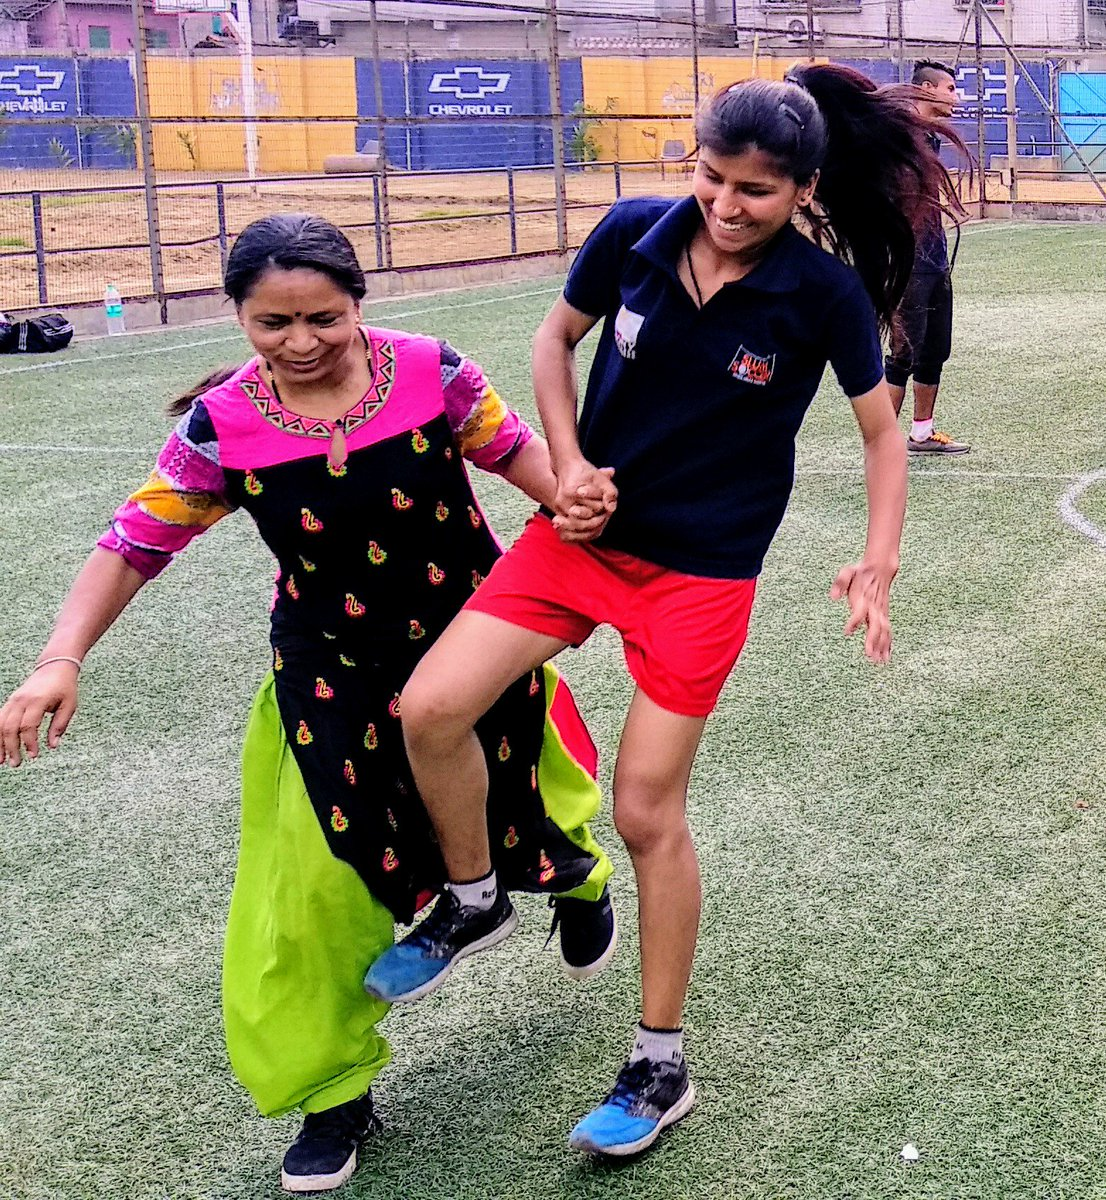 test Twitter Media - Day 3: When we play together, we break so many barriers. #Youth #GameChangers #Kolkata #SDGs #support @SPNSportsIndia #EkIndiaHappywala https://t.co/GQ25m1lzp0